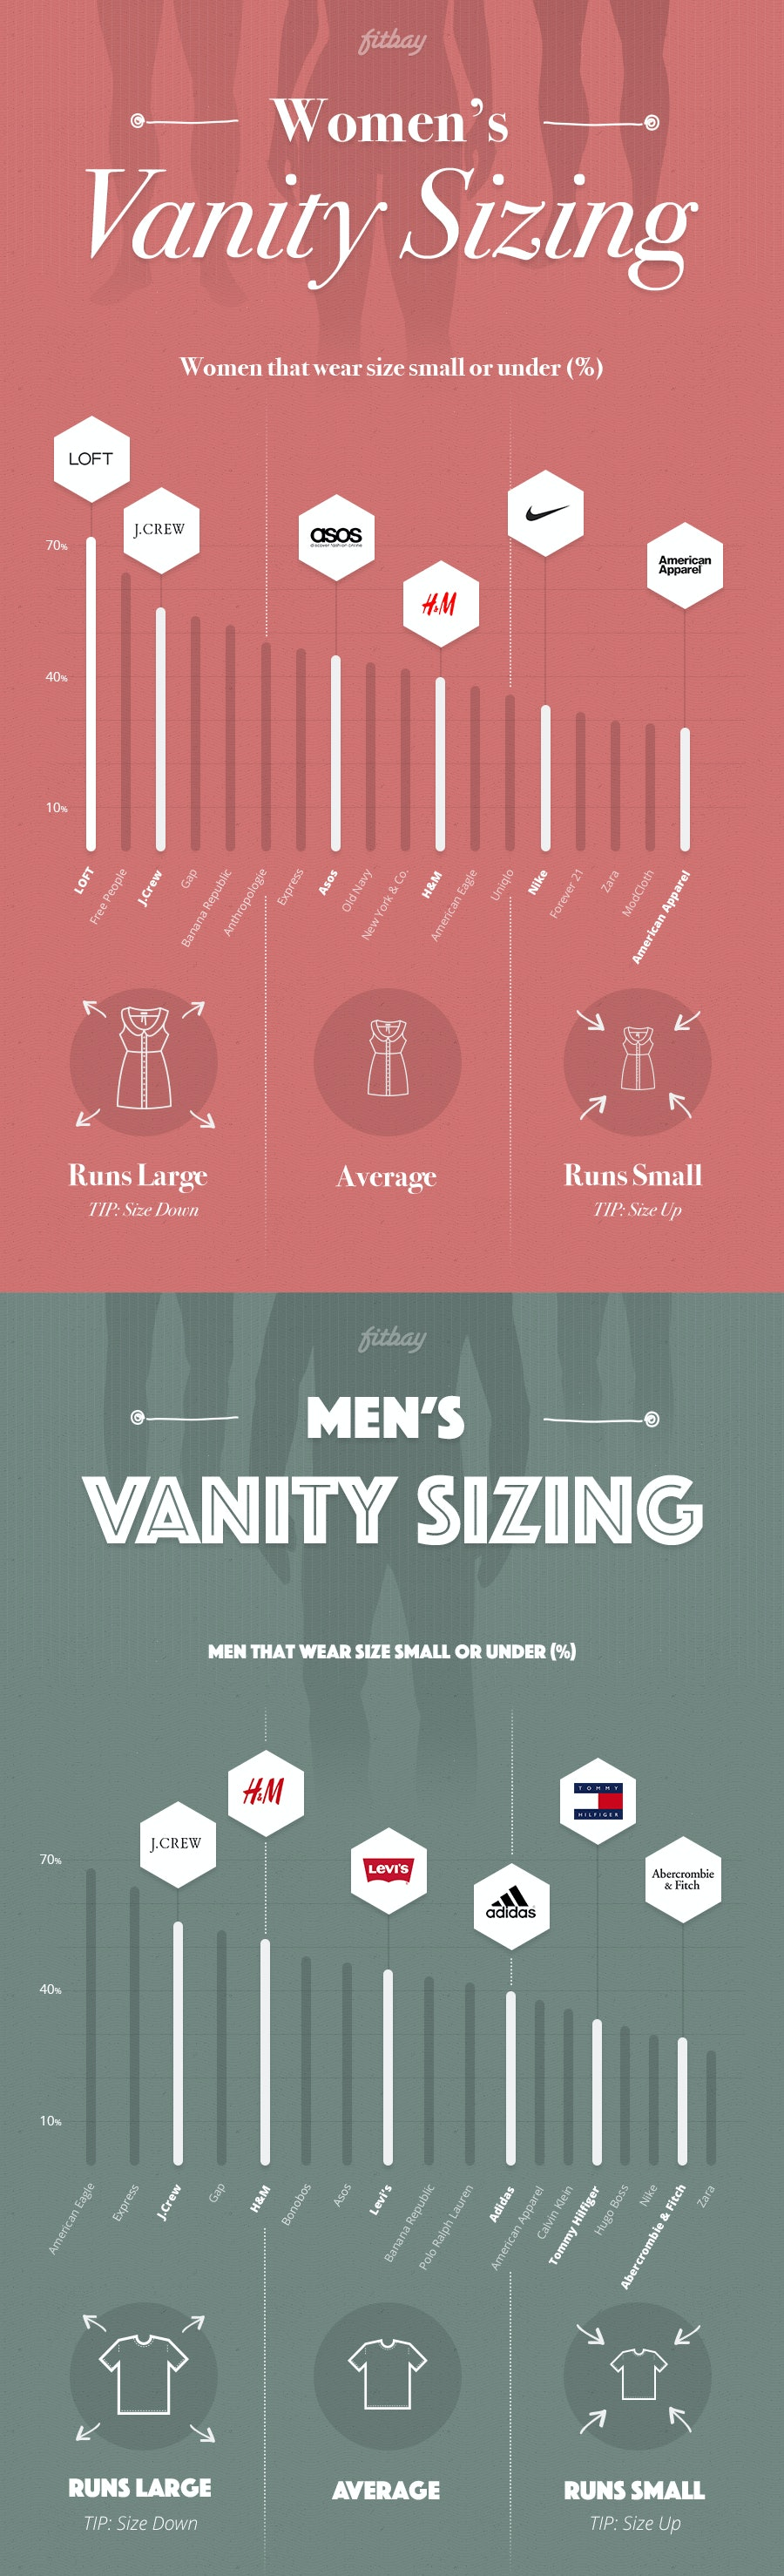 Which Brands Use Vanity Sizing This Handy Fitbay Chart Shows The Worst Offenders